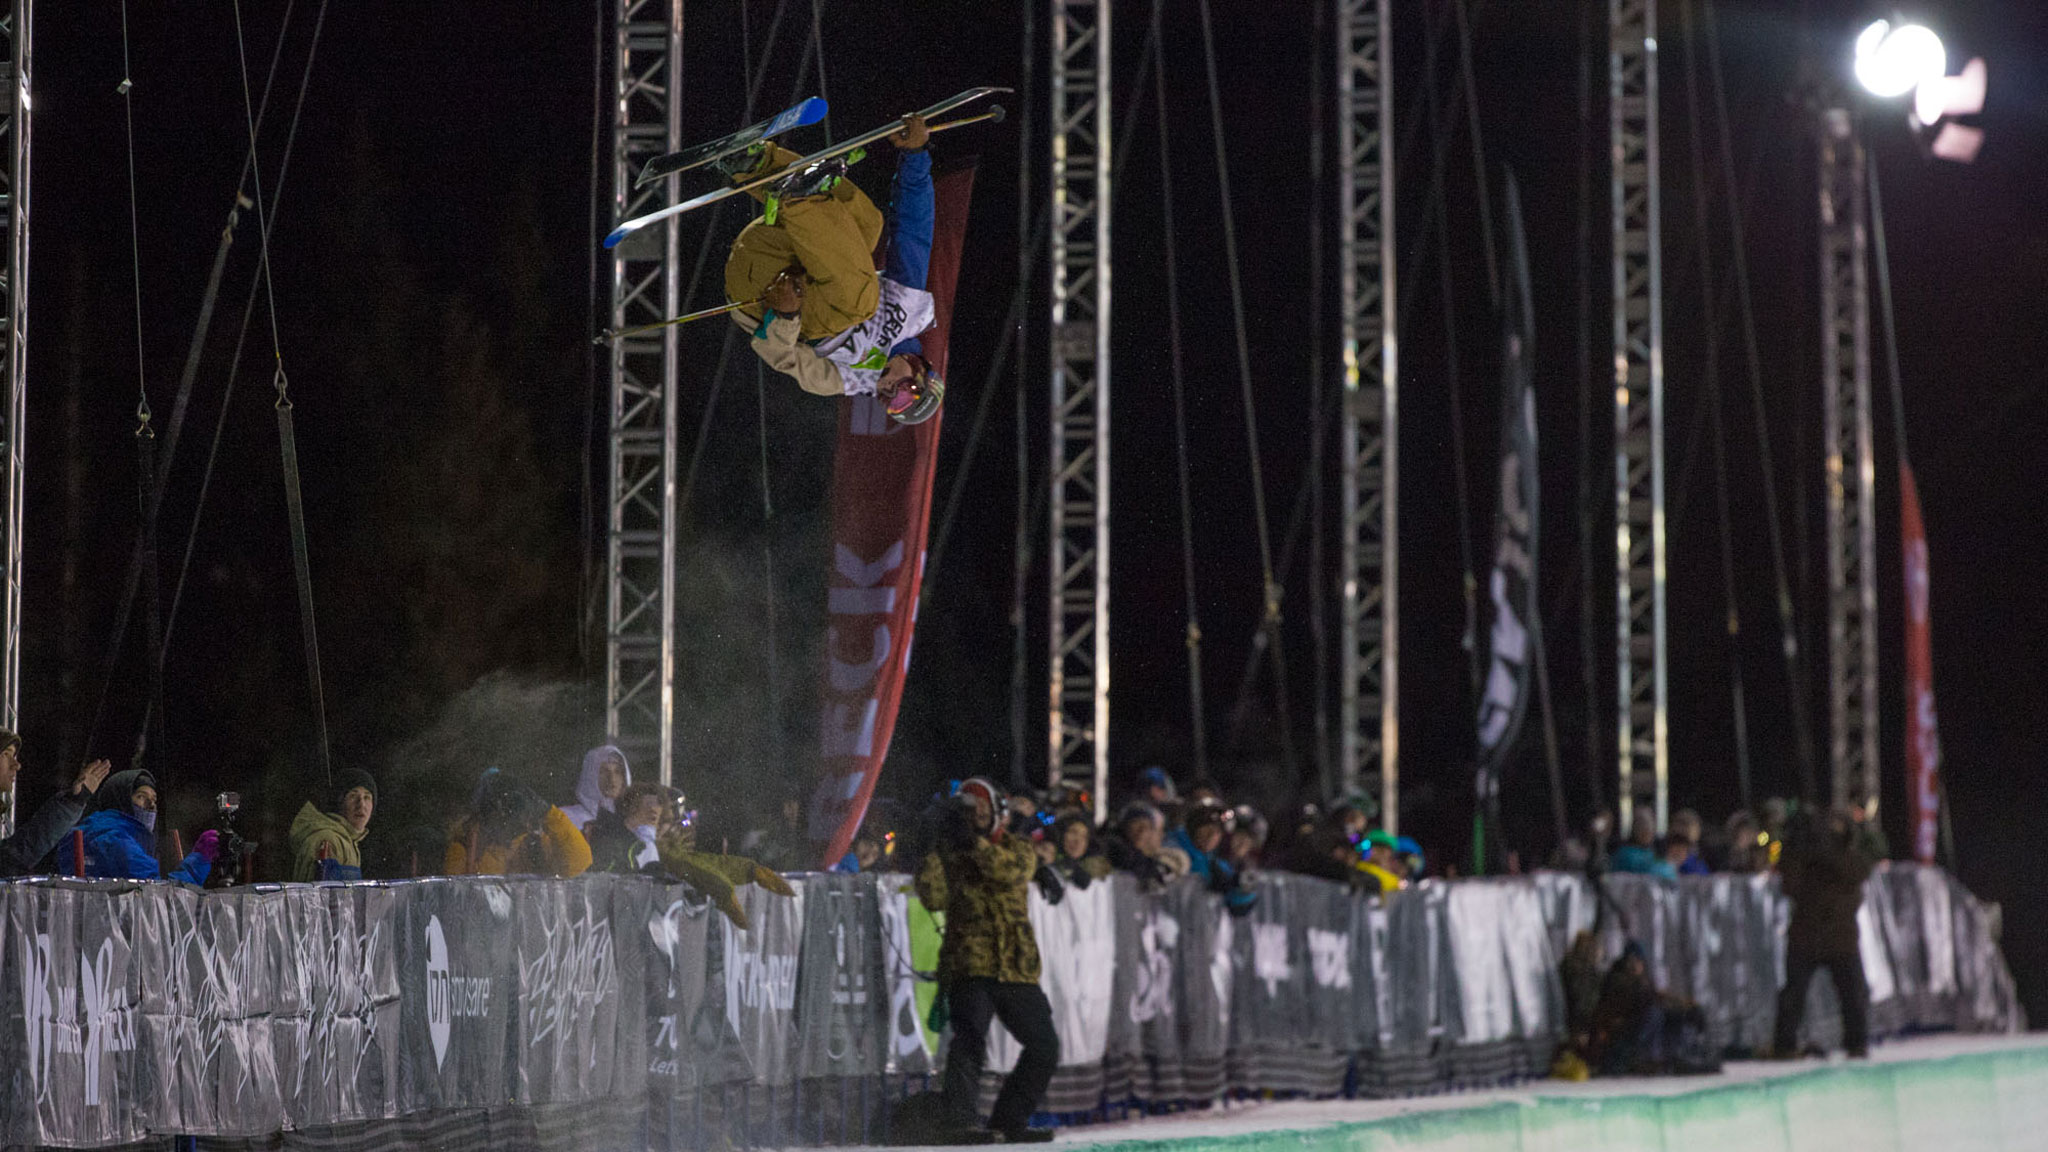 David Wise, Superpipe Winner